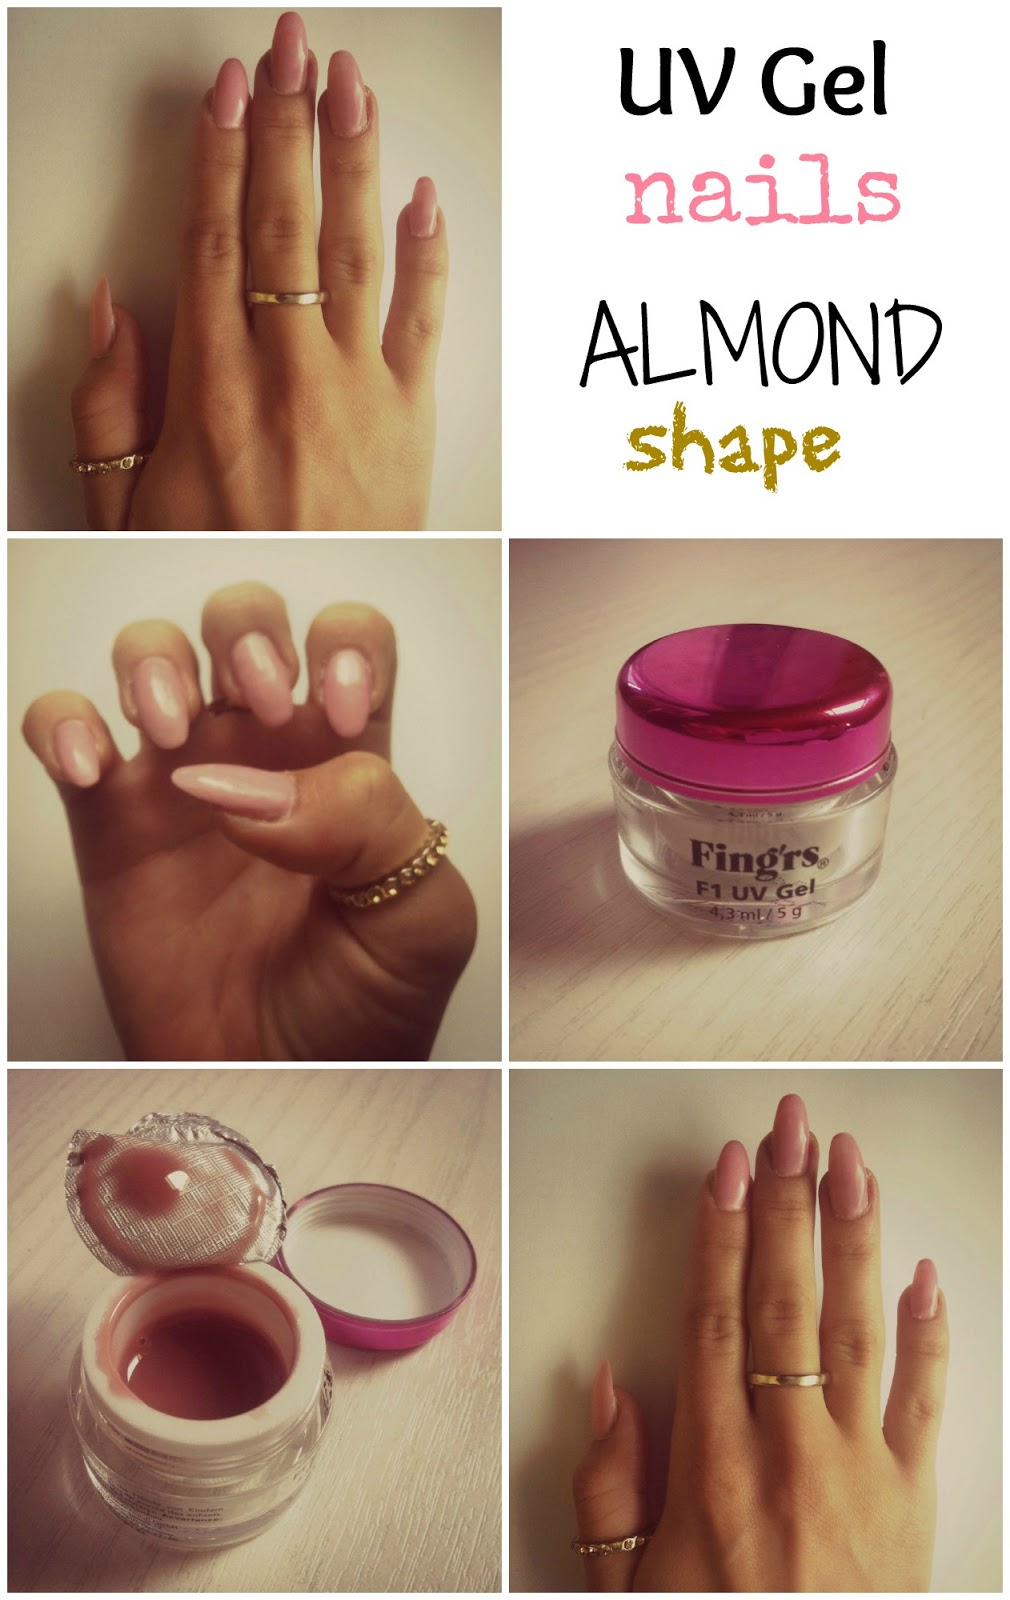 Almond Nail Designs Tumblr Images & Pictures - Becuo